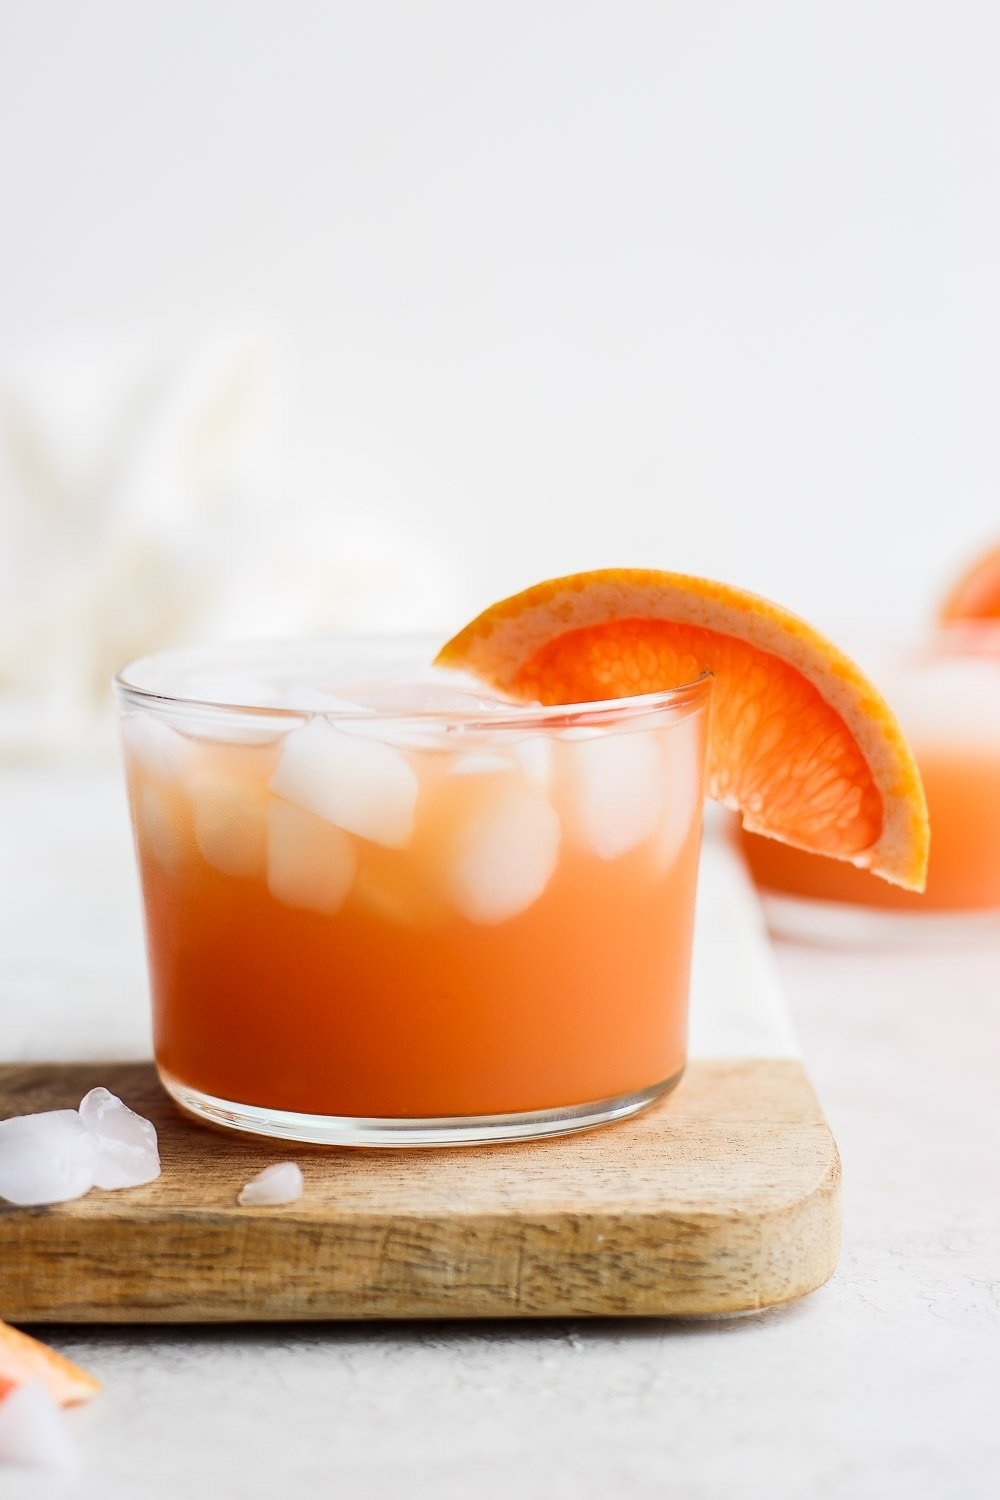 paloma cocktail with ice and a grapefruit slice garnish